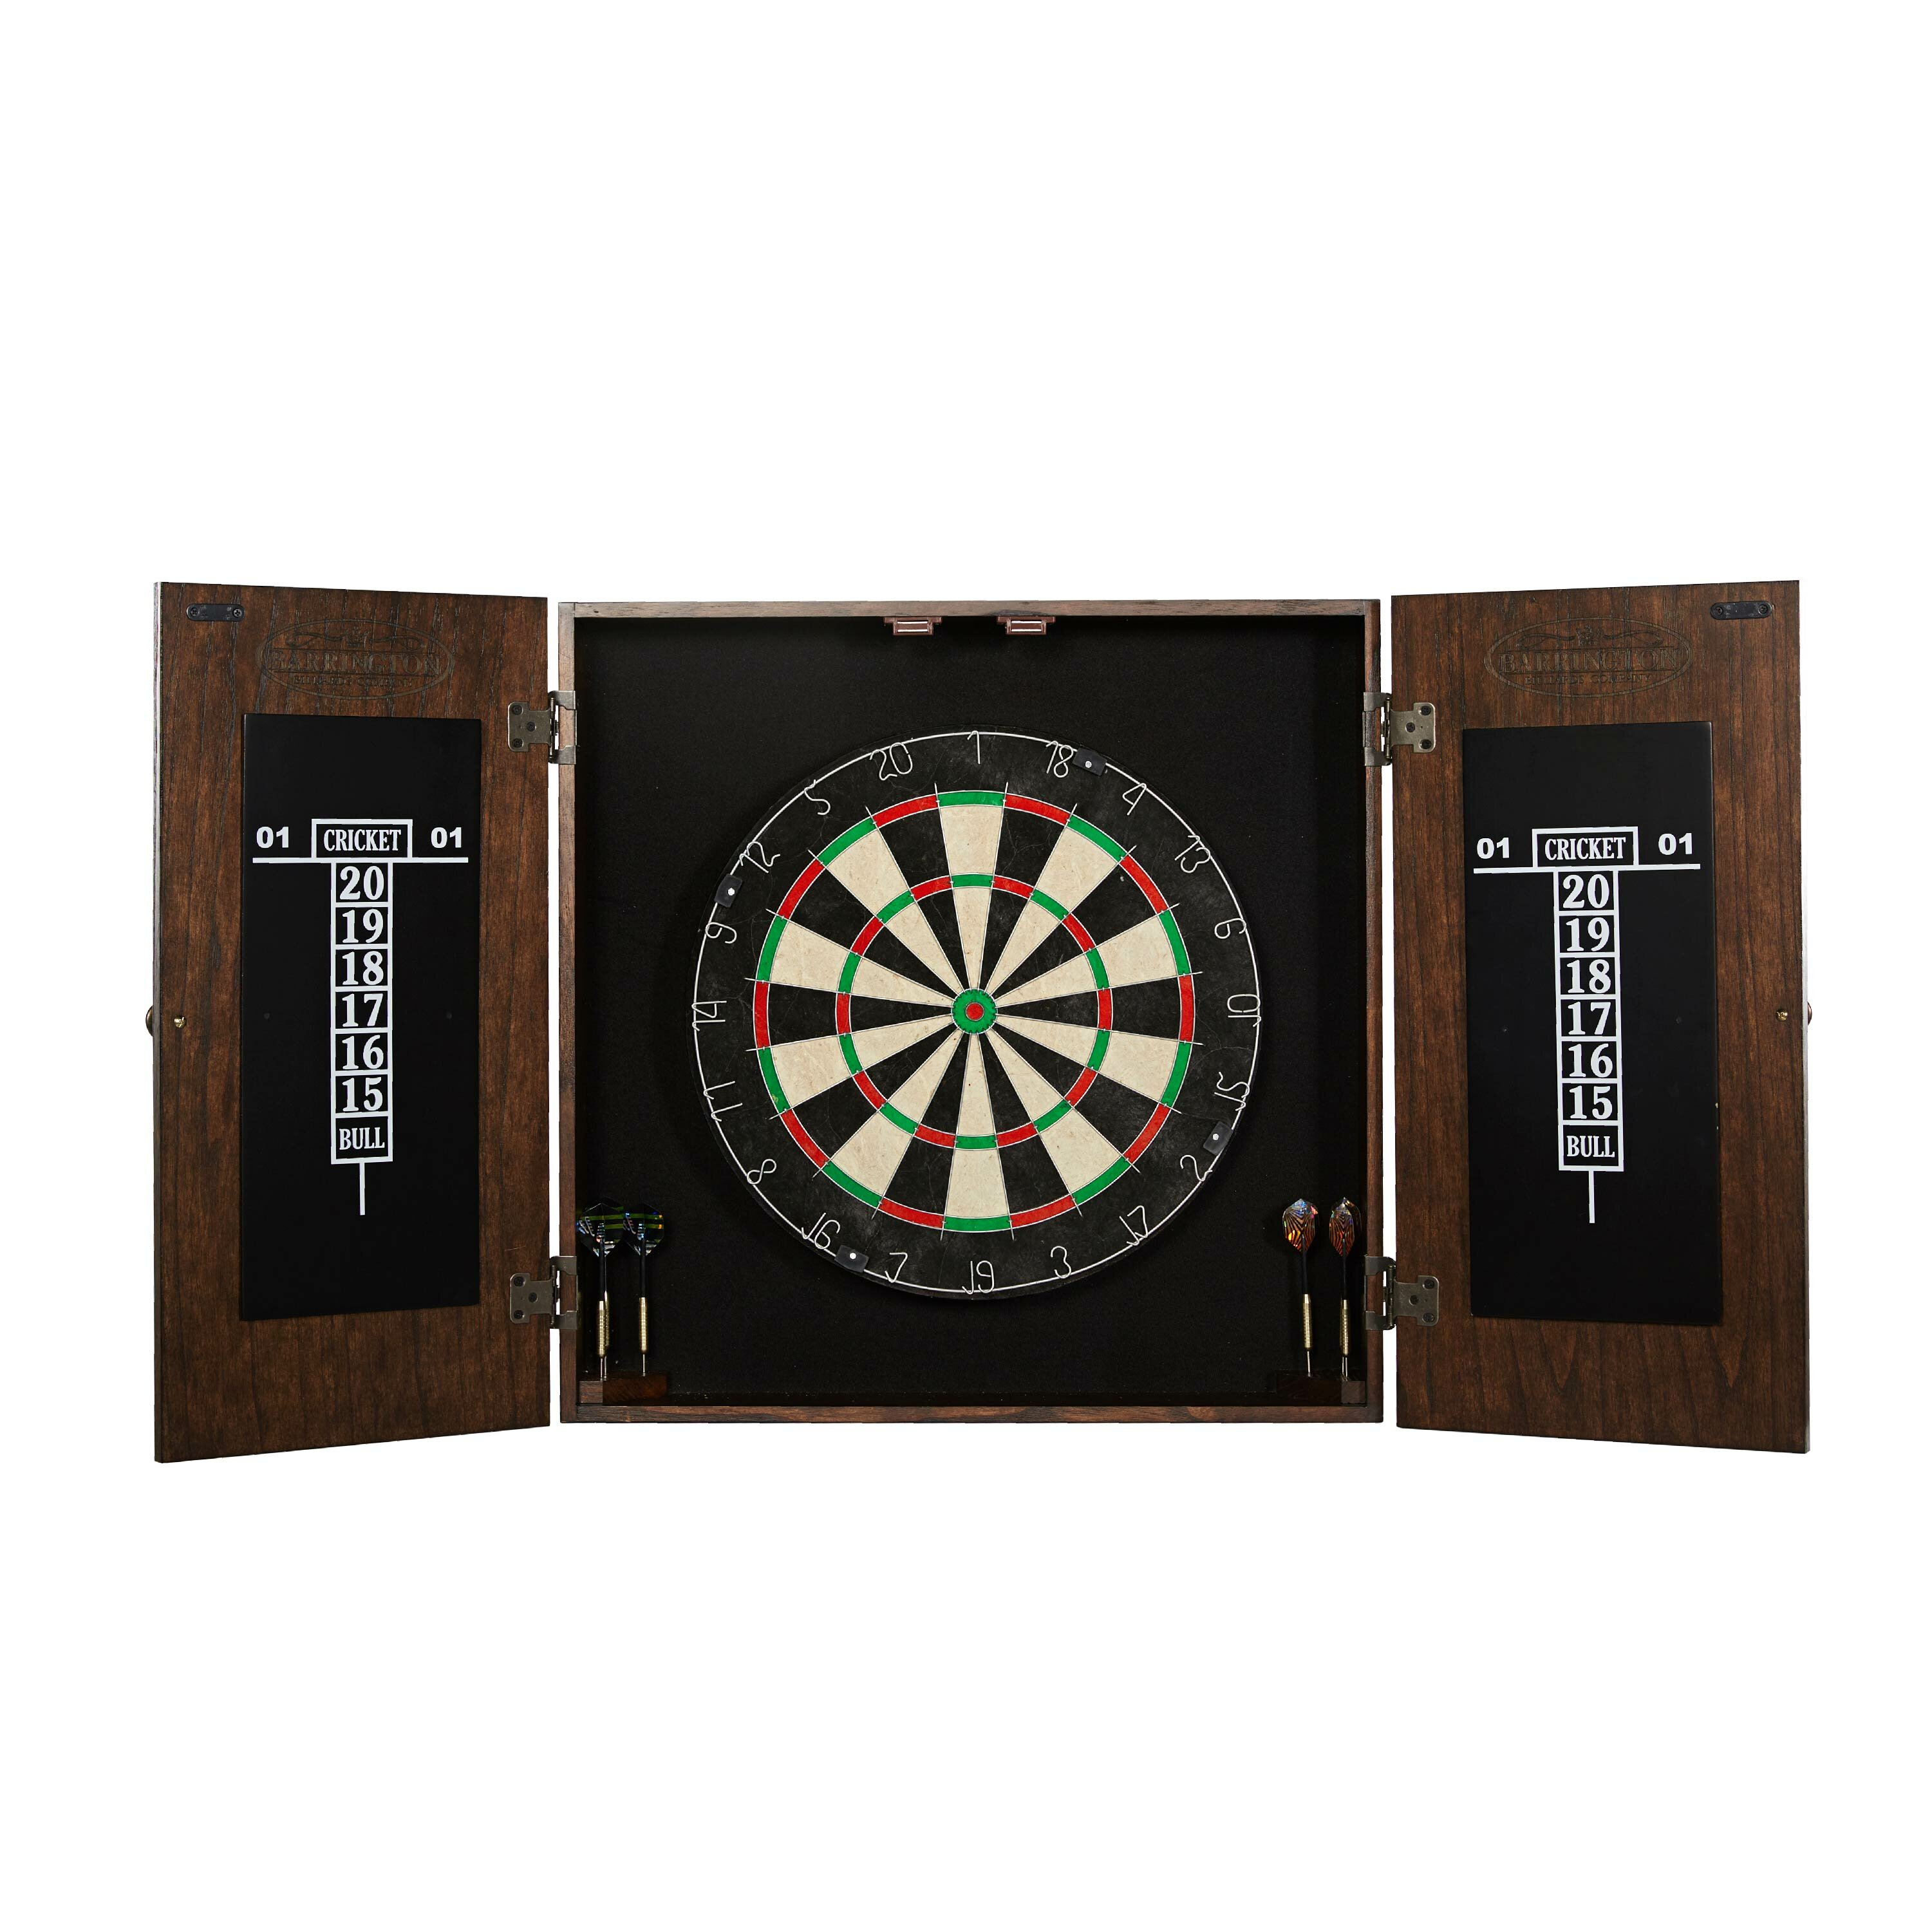 Barrington Billiards Company Webster Dartboard And Cabinet Set